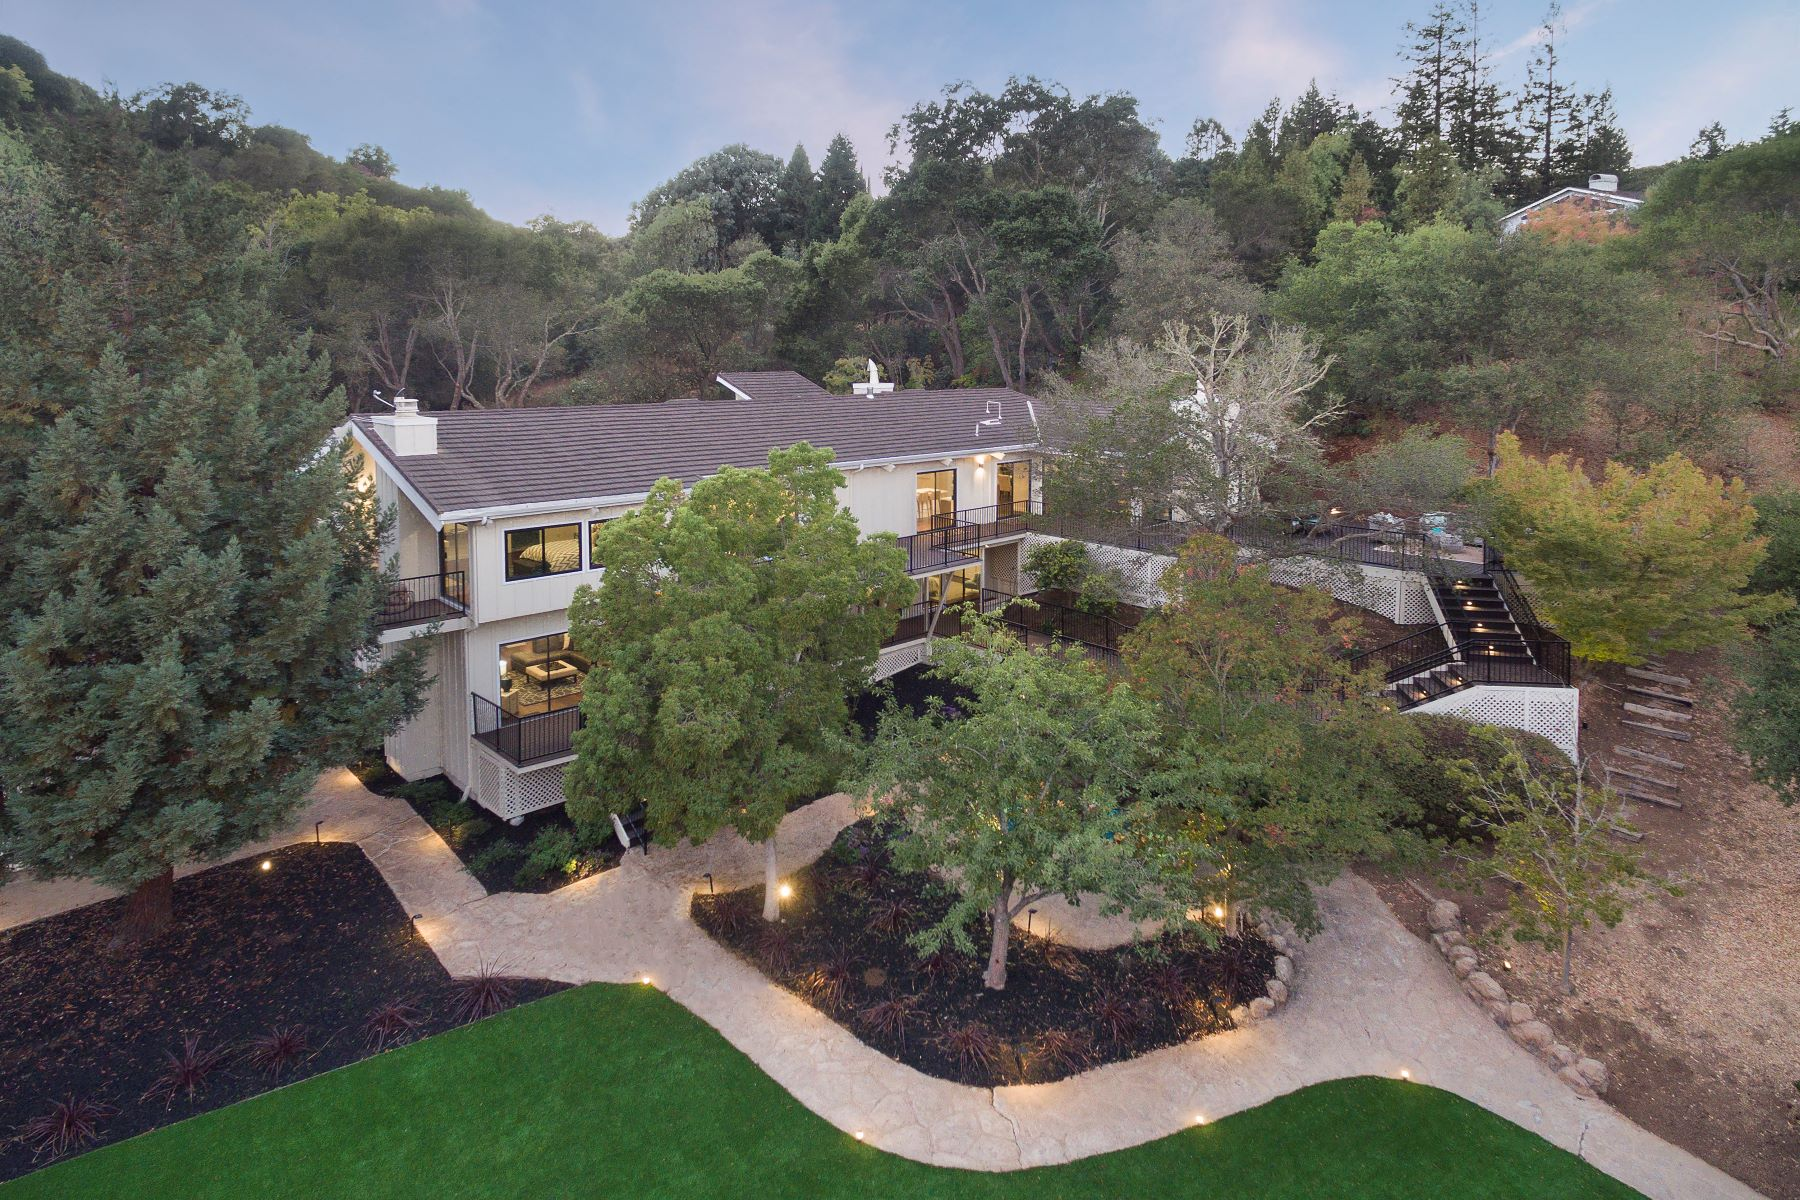 Single Family Homes for Sale at Peaceful, Modern, Acreage 27464 Altamont Road Los Altos Hills, California 94022 United States